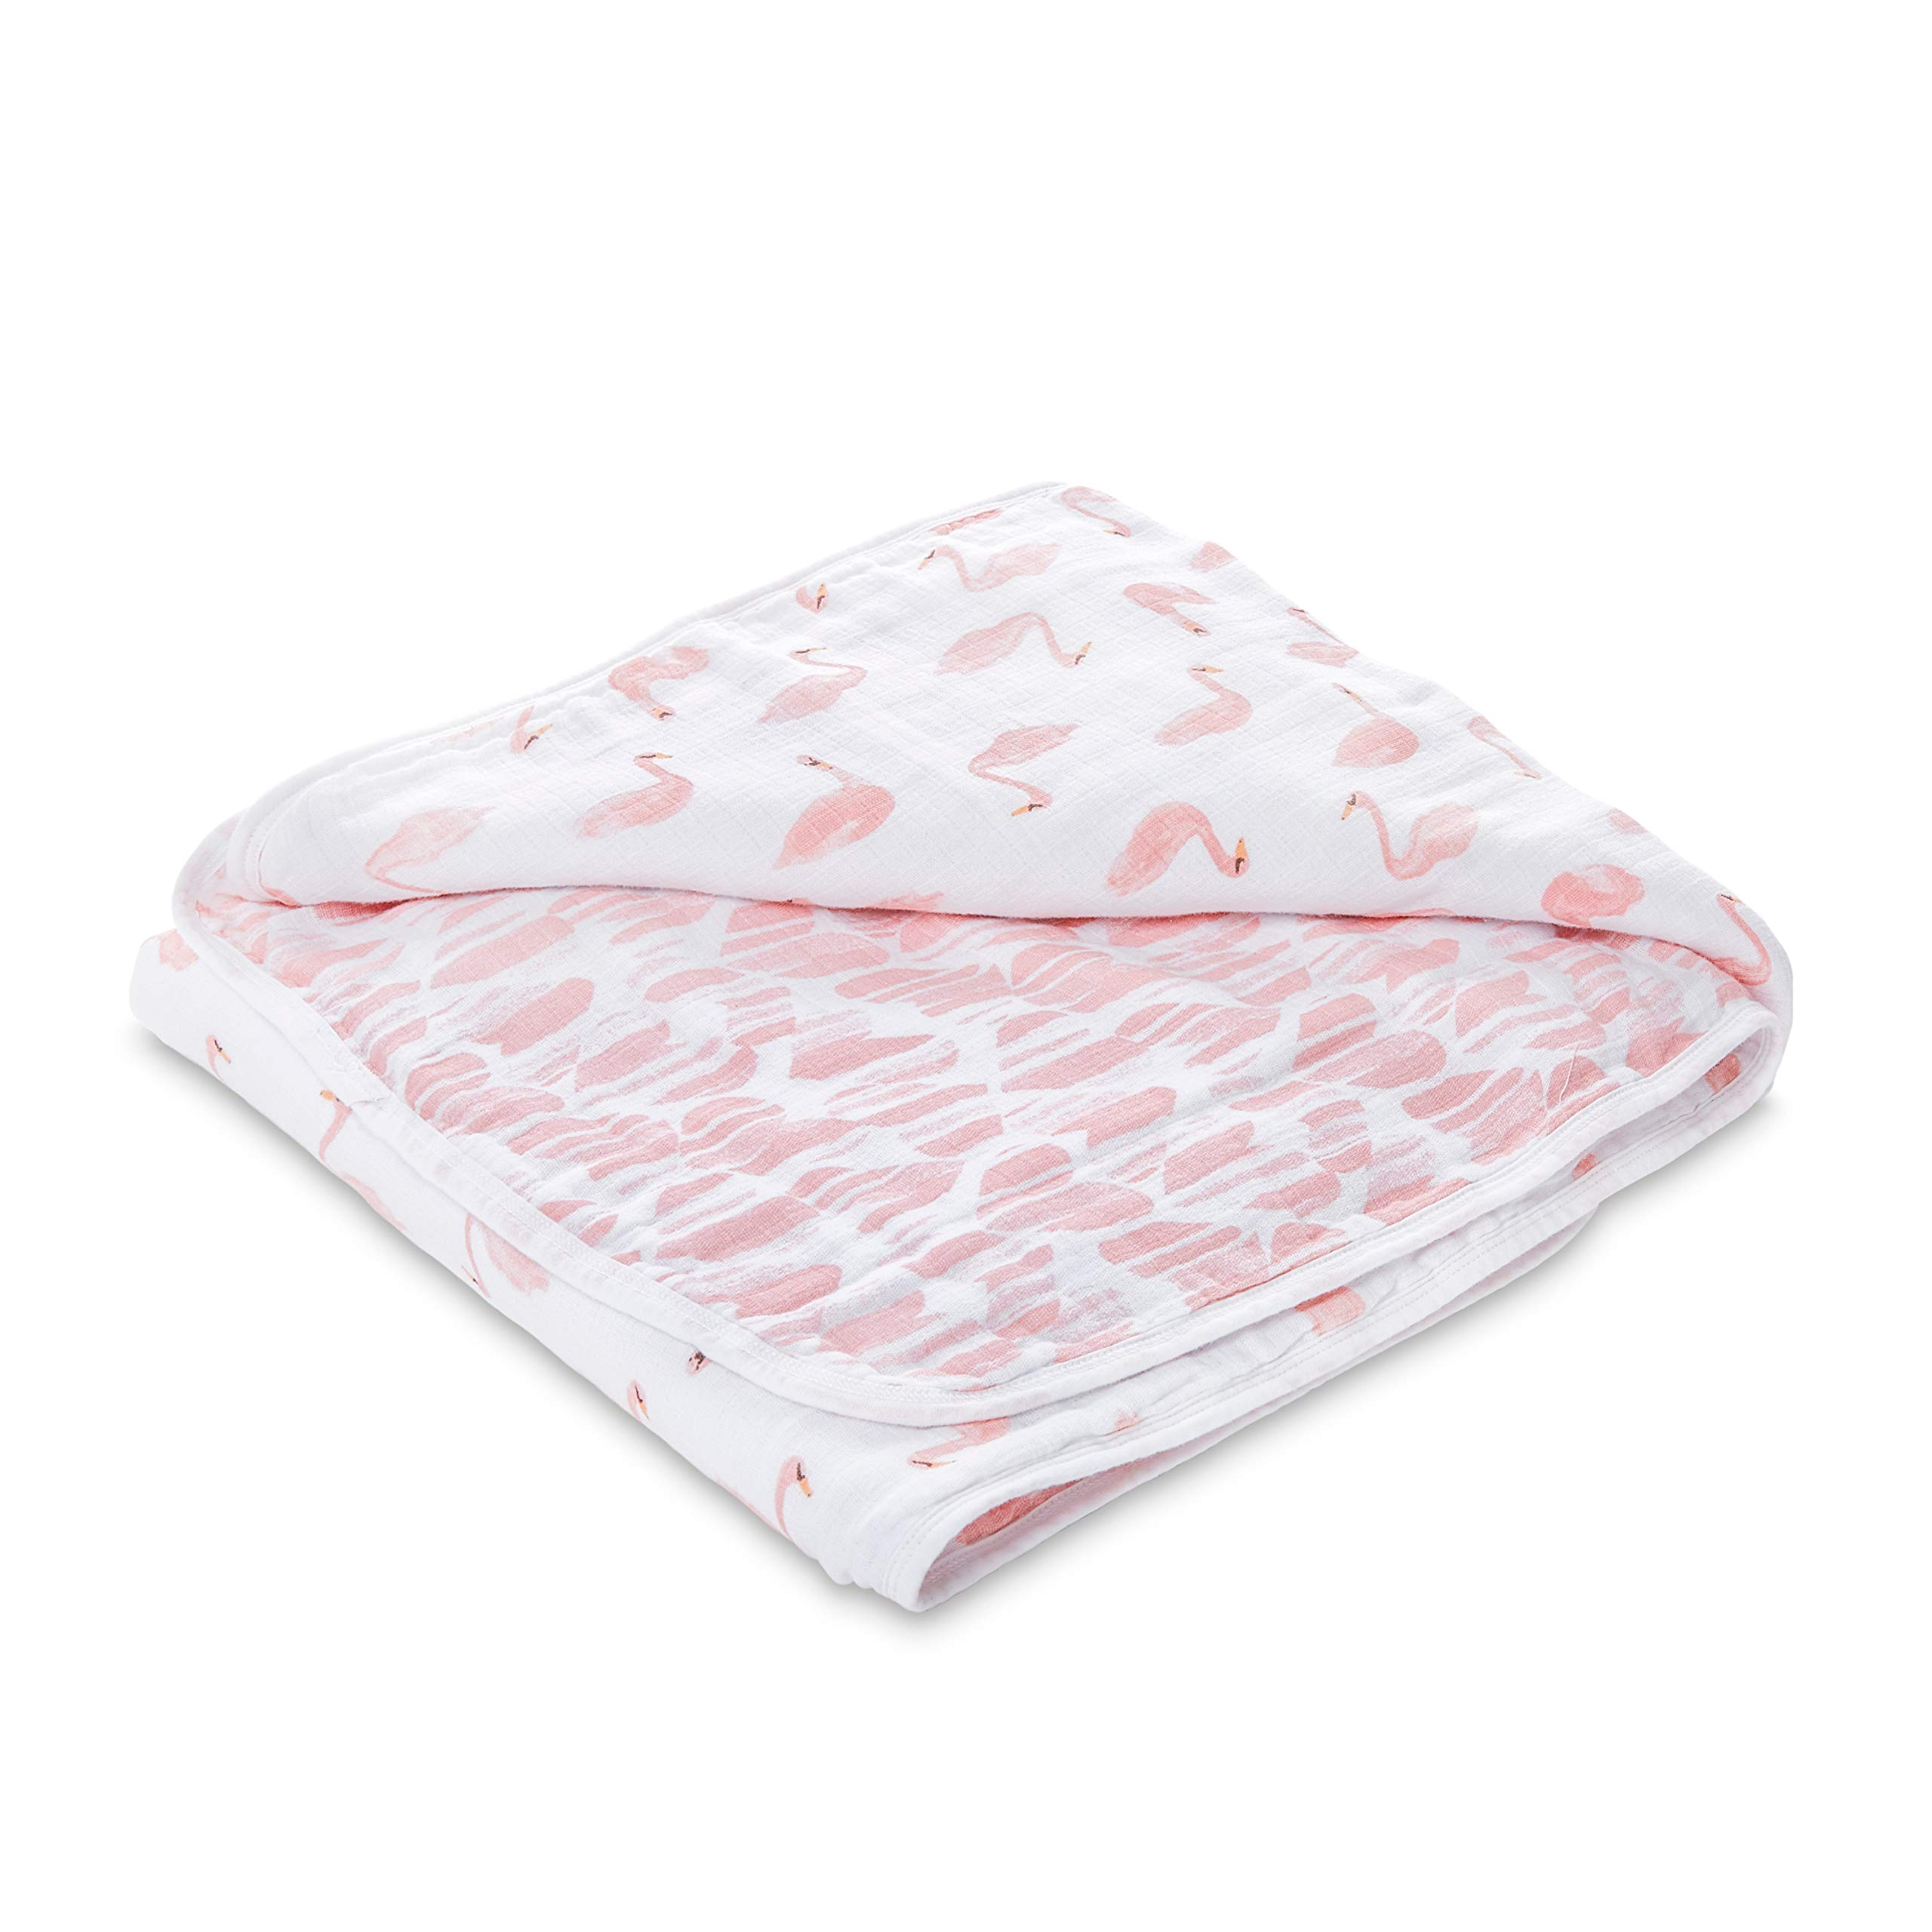 aden by aden + anais Dream Blanket, 100% Cotton Muslin, 4 Layer Lightweight and Breathable, Large 44 X 44 inch, Briar Rose - Swans